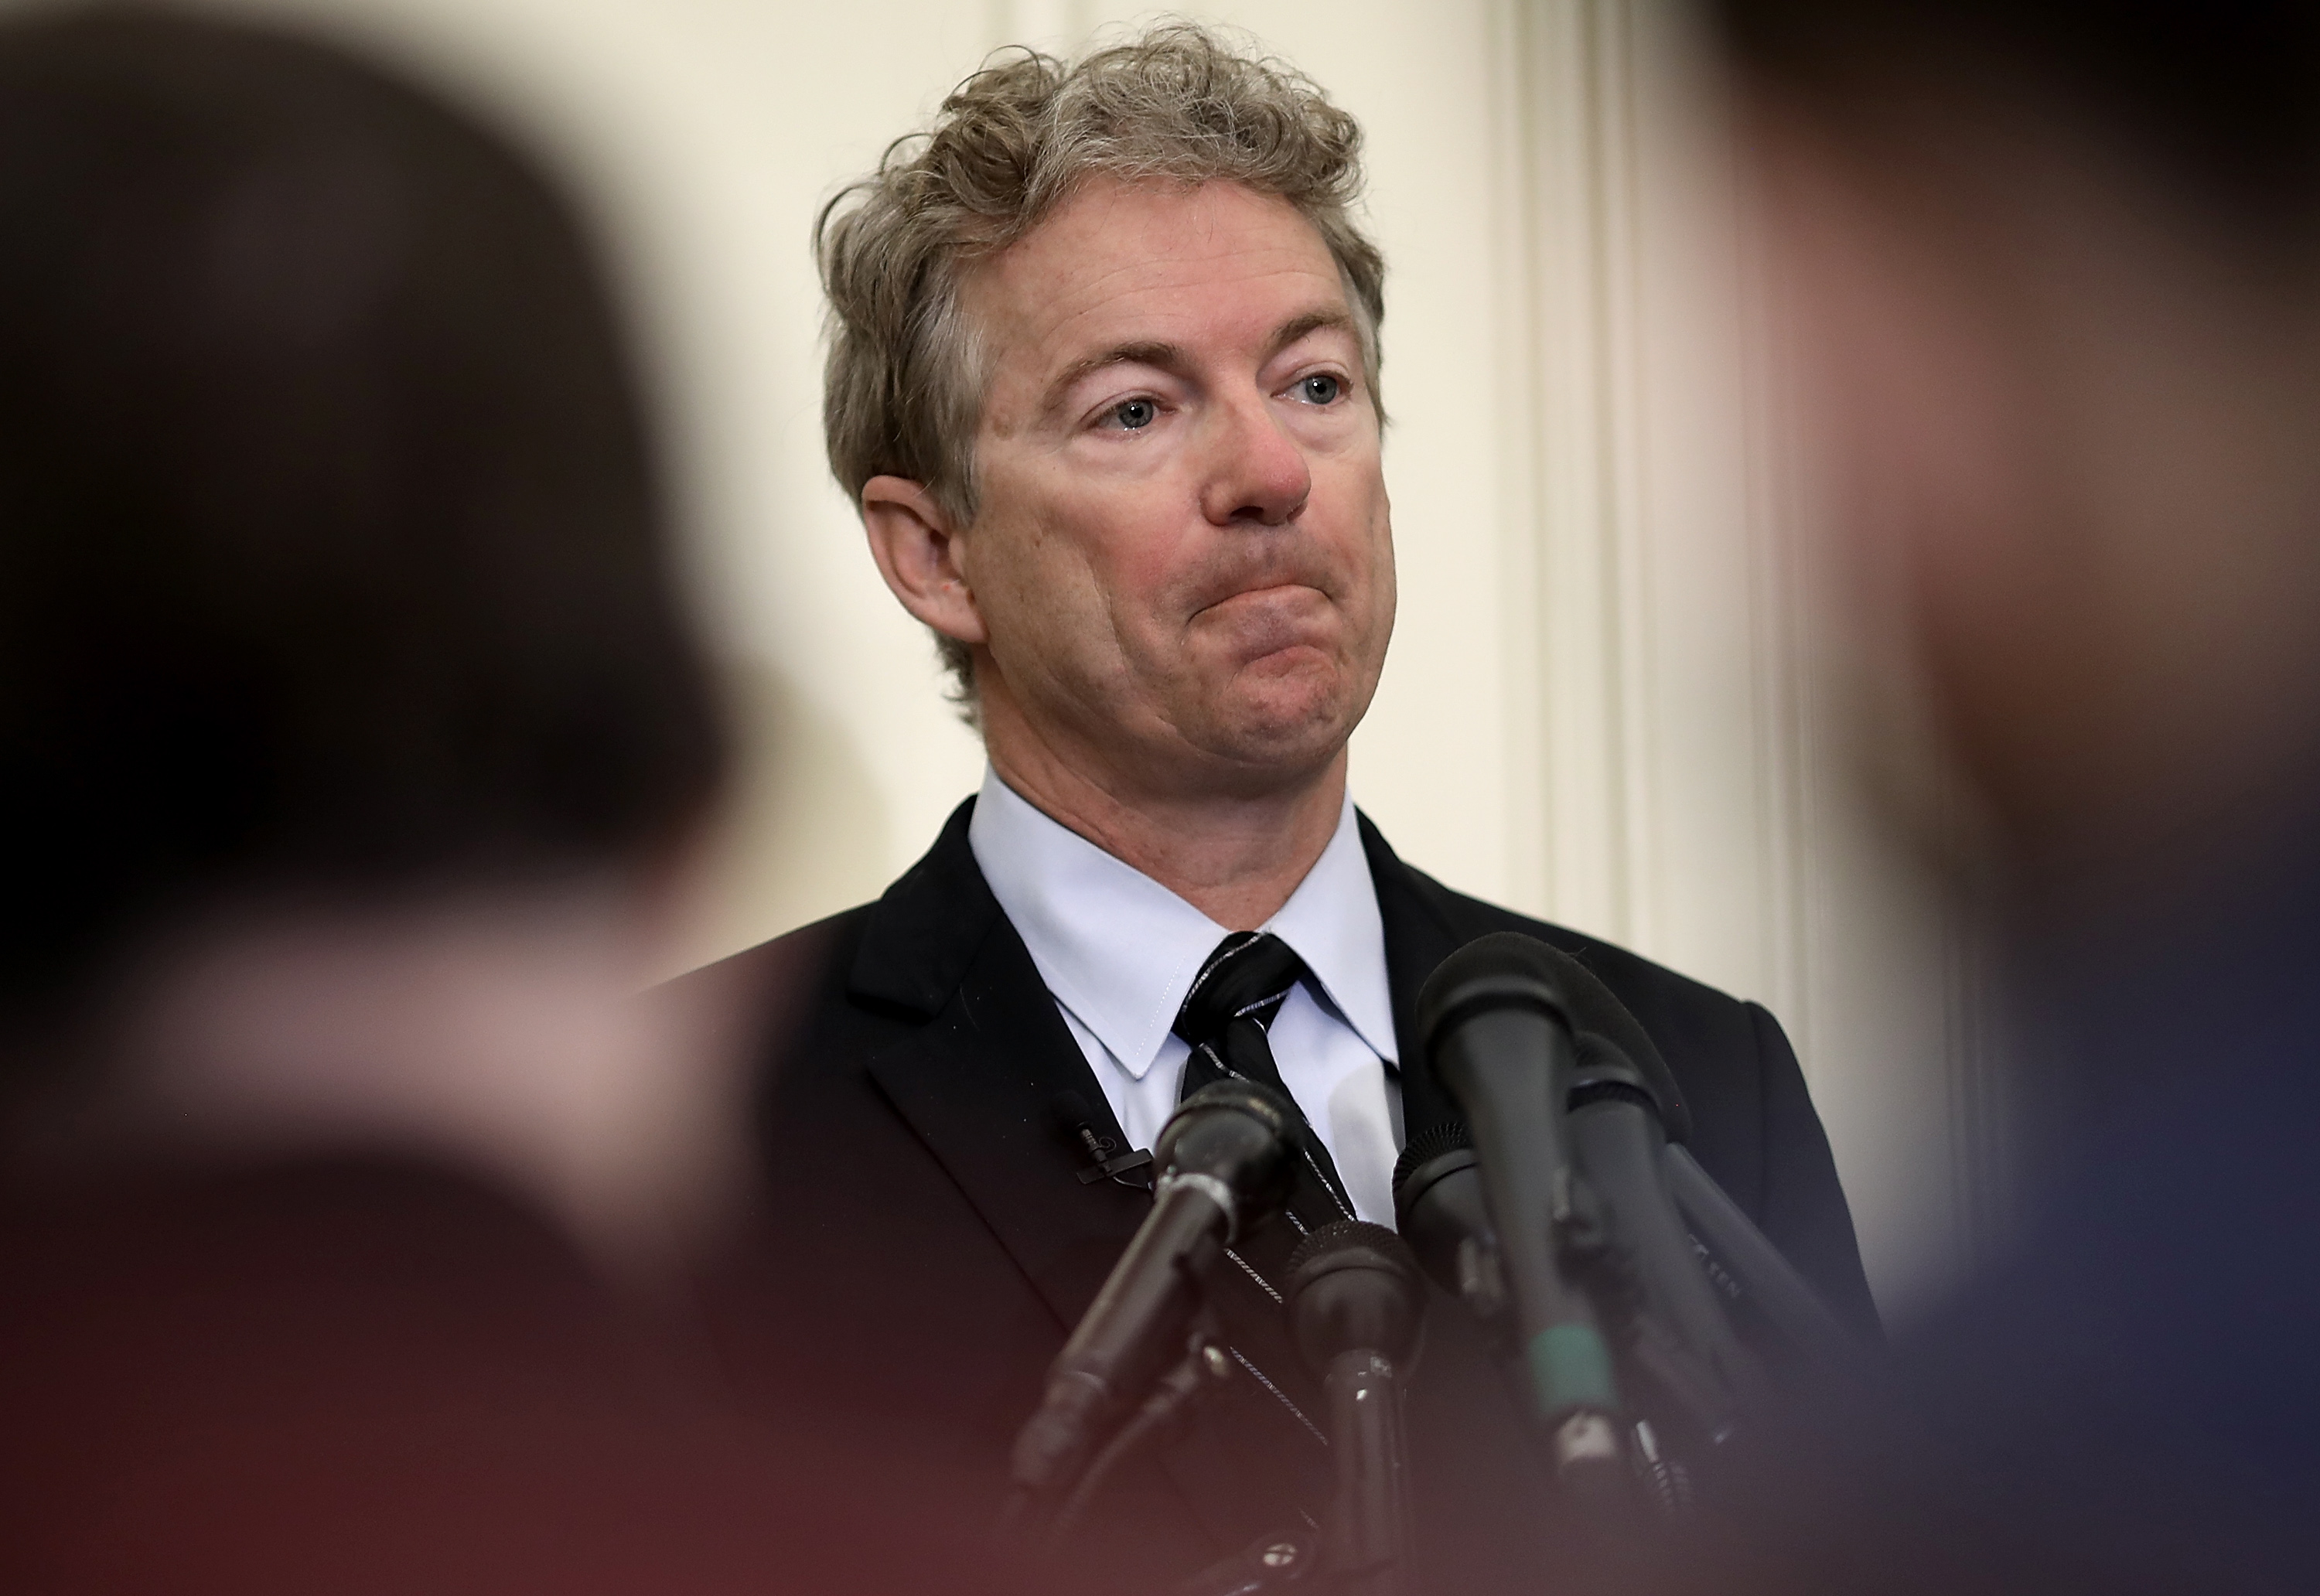 Sen. Rand Paul (R-KY) speaks during a press conference at the U.S. Capitol on March 14, 2018 in Washington, DC.